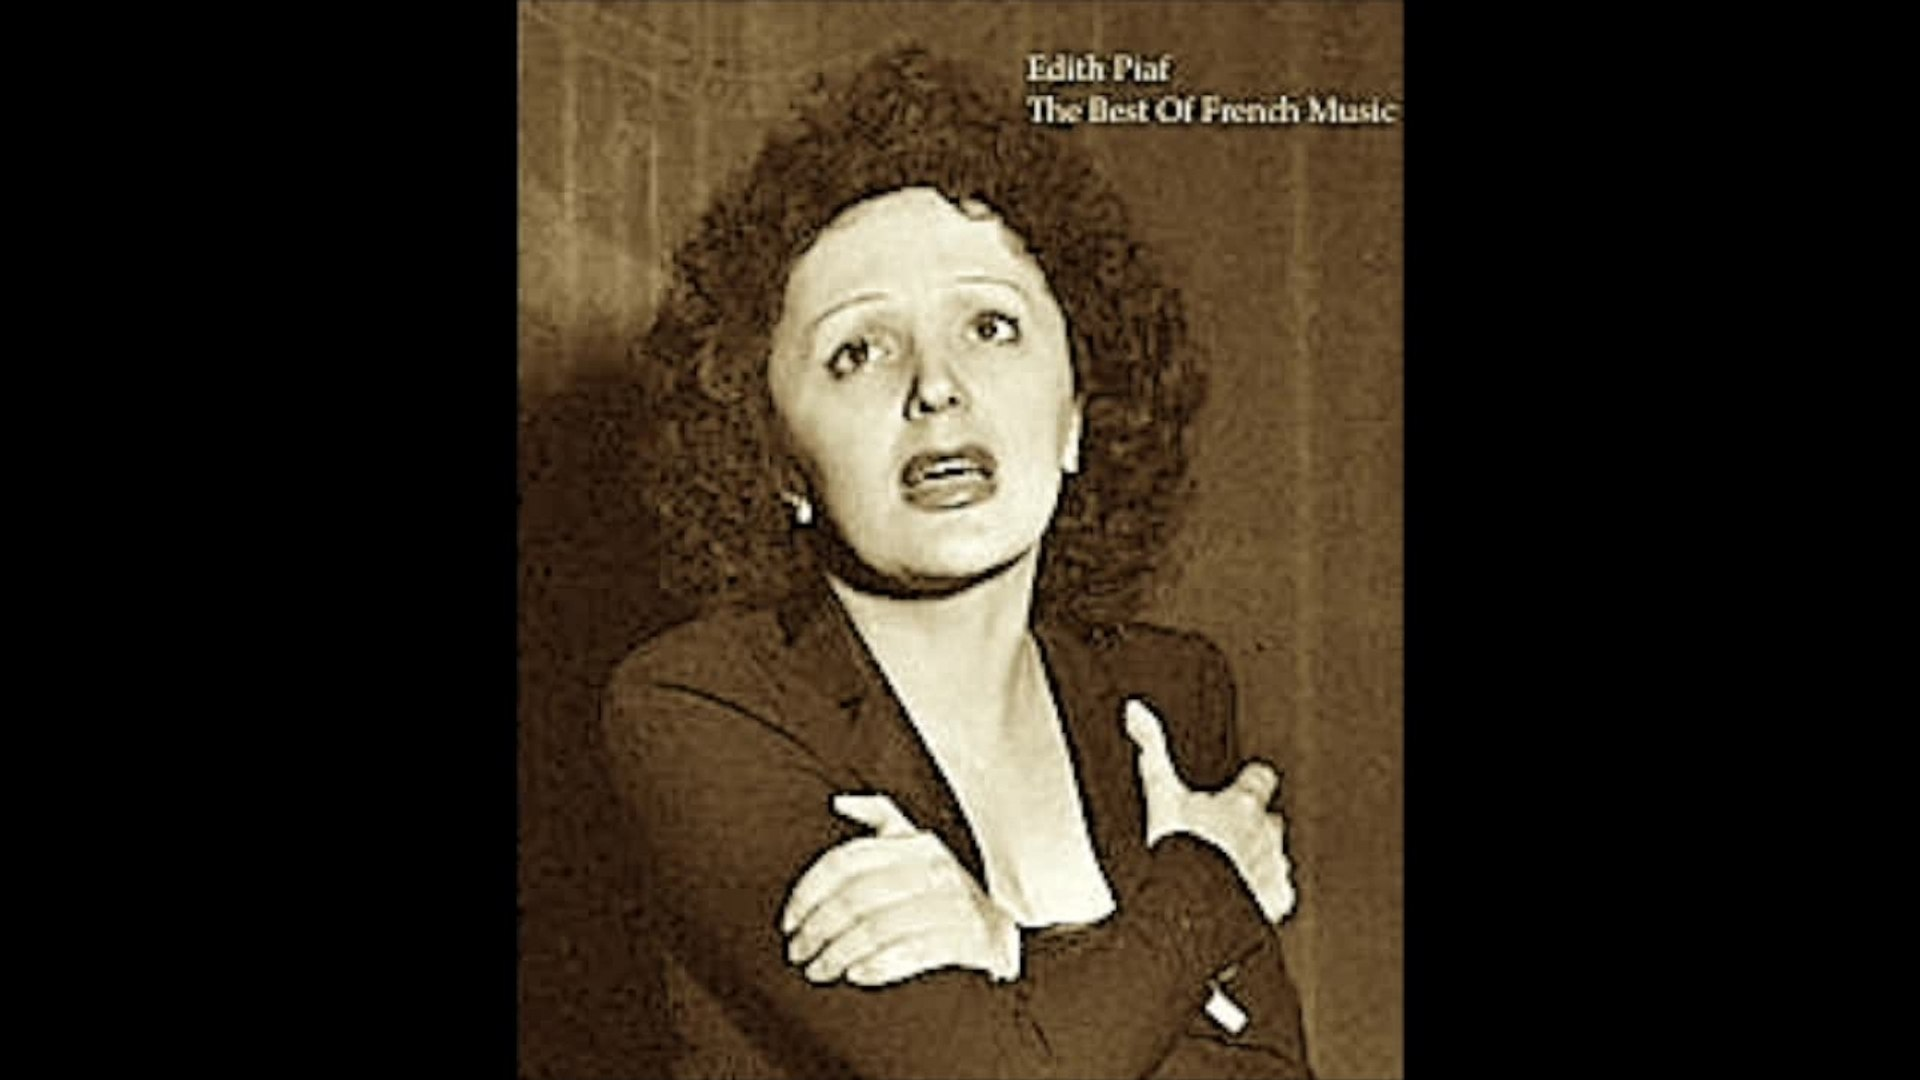 Edith Piaf - The Best Of French Music (Relaxing Classic Tracks) [Classic Smooth Songs]